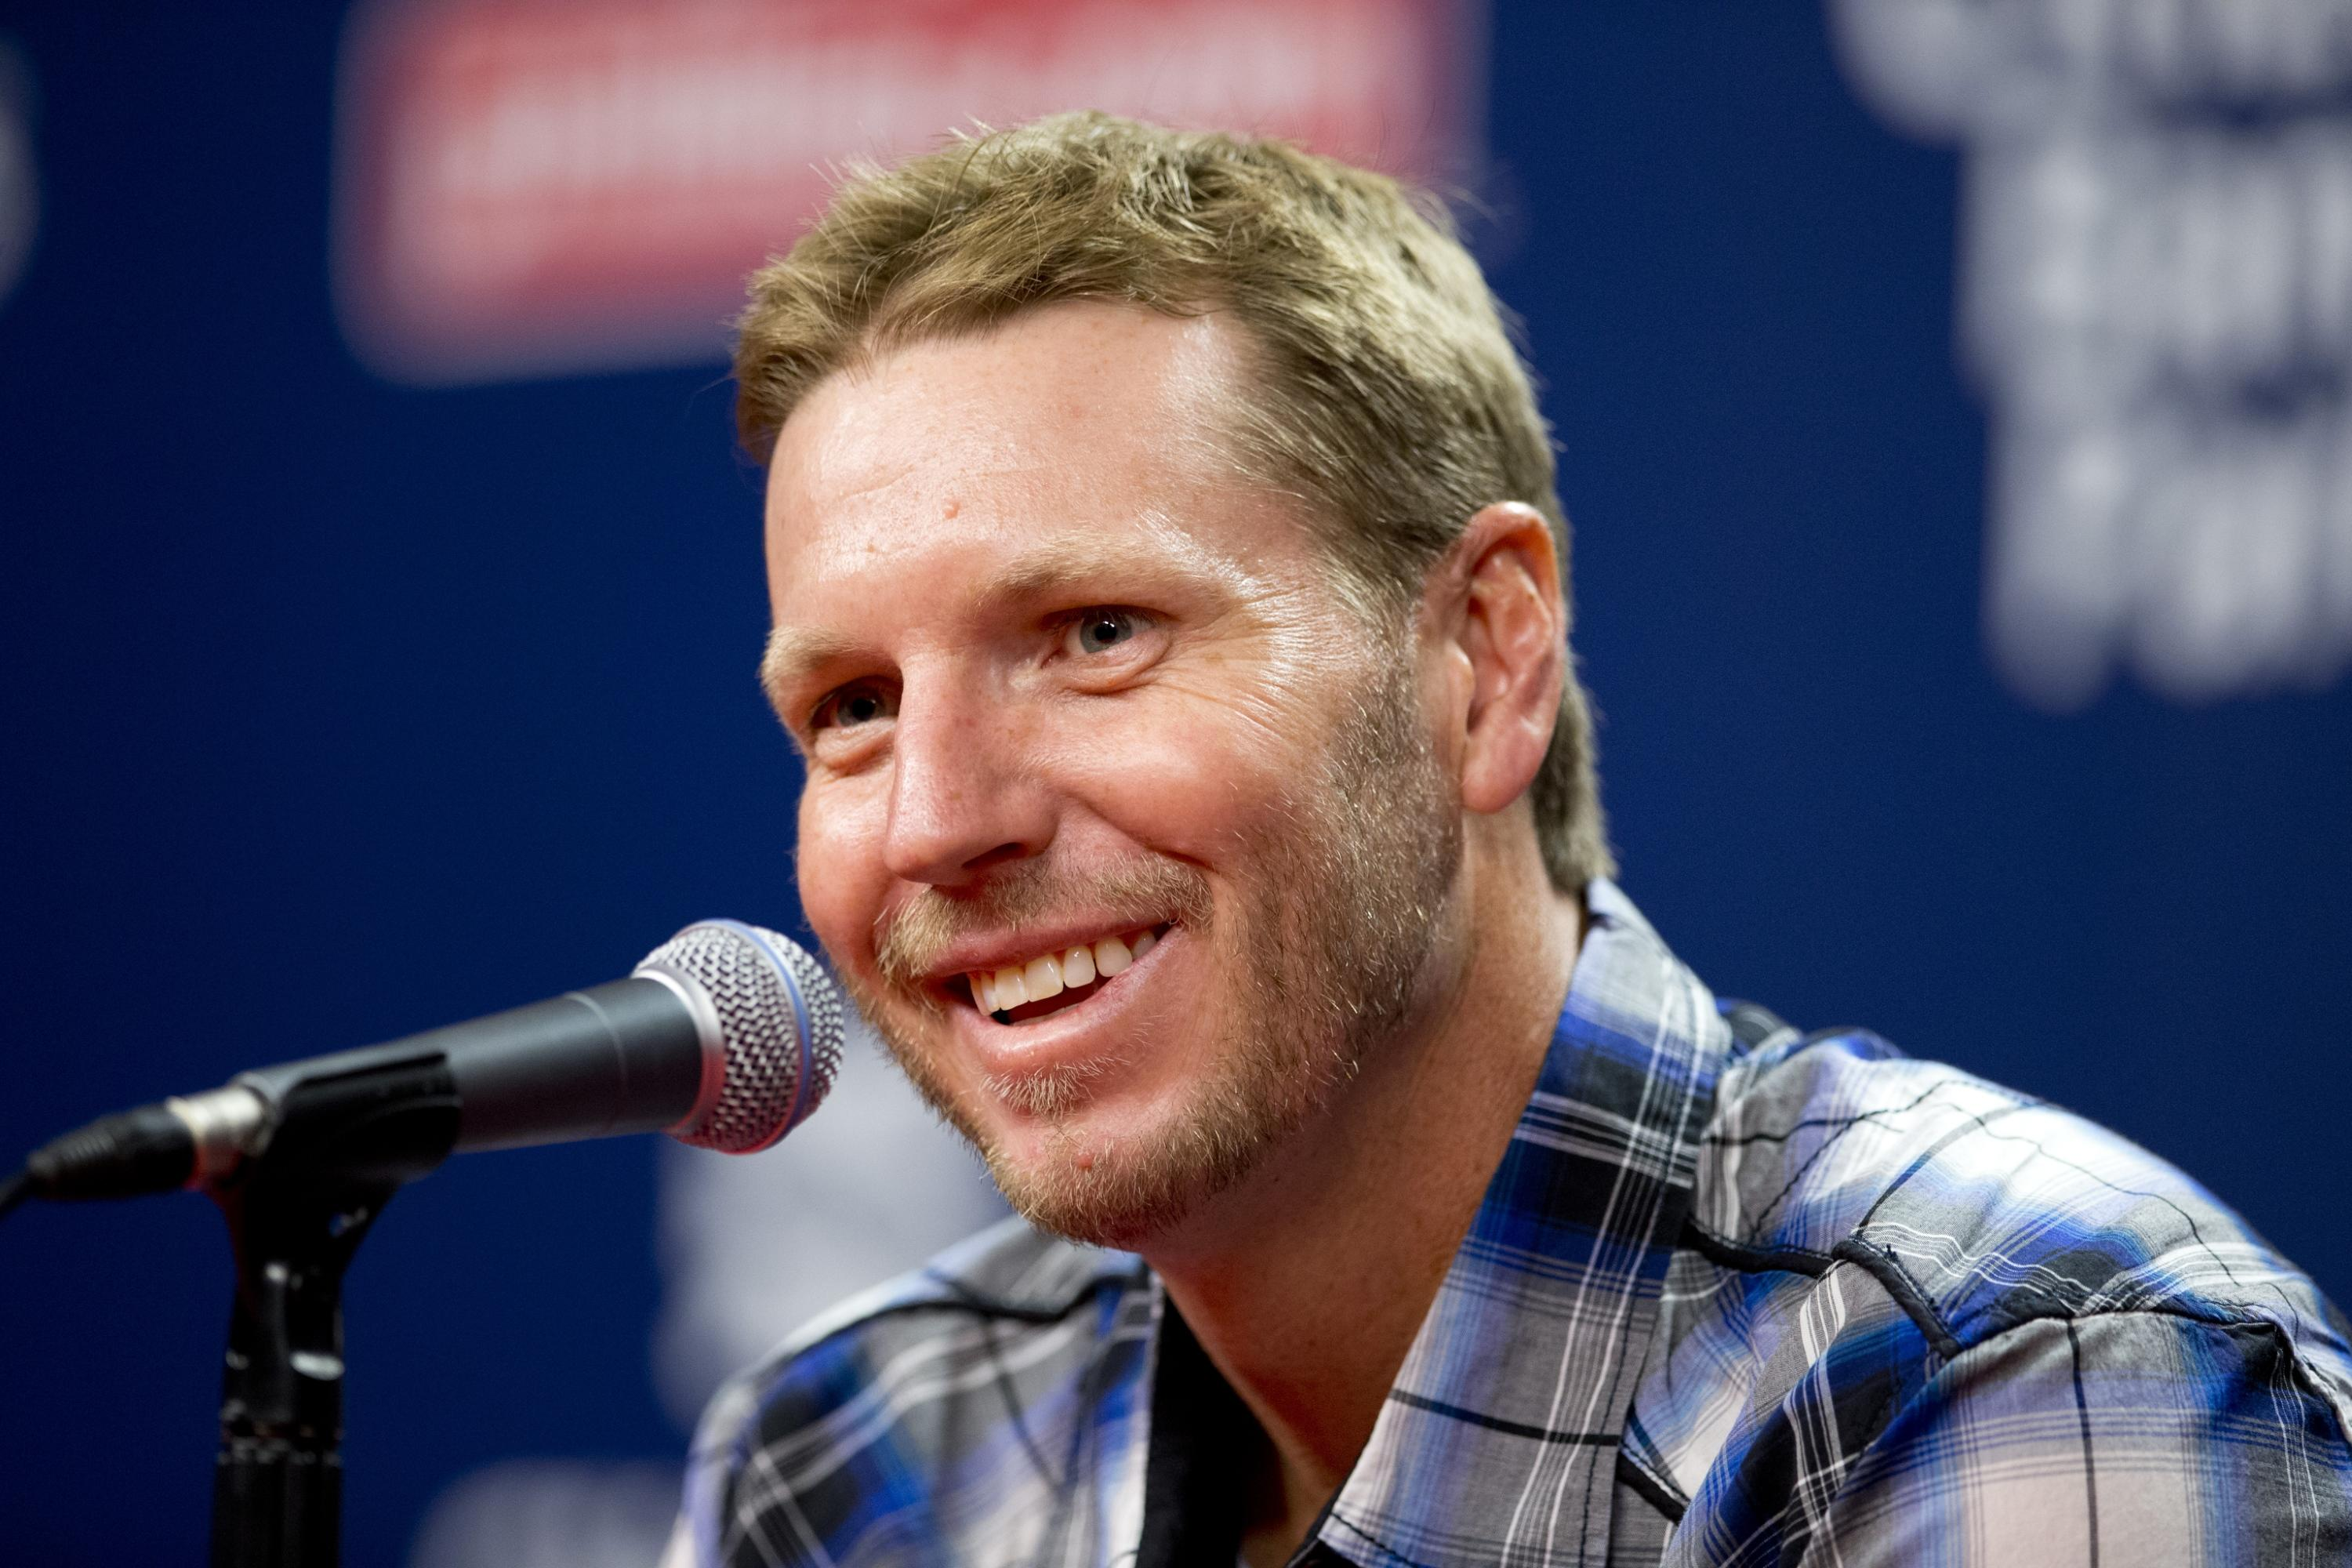 Latest Twitter photo proves there's nothing Roy Halladay can't do